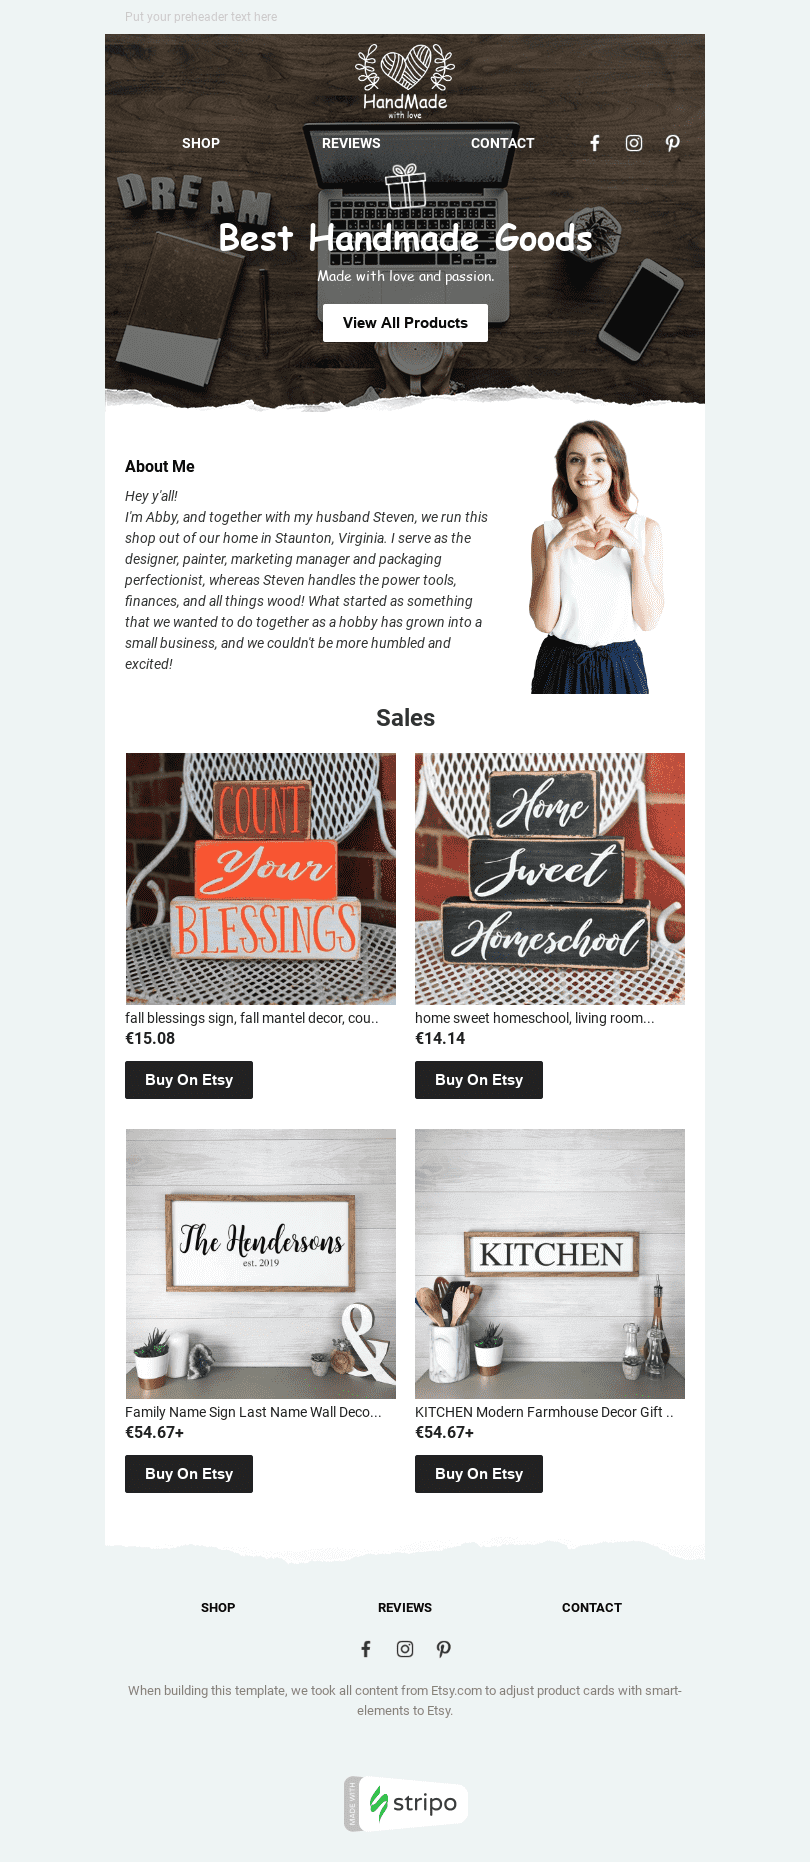 Promo Email Template «Best Handmade» for Ecommerce industry desktop view